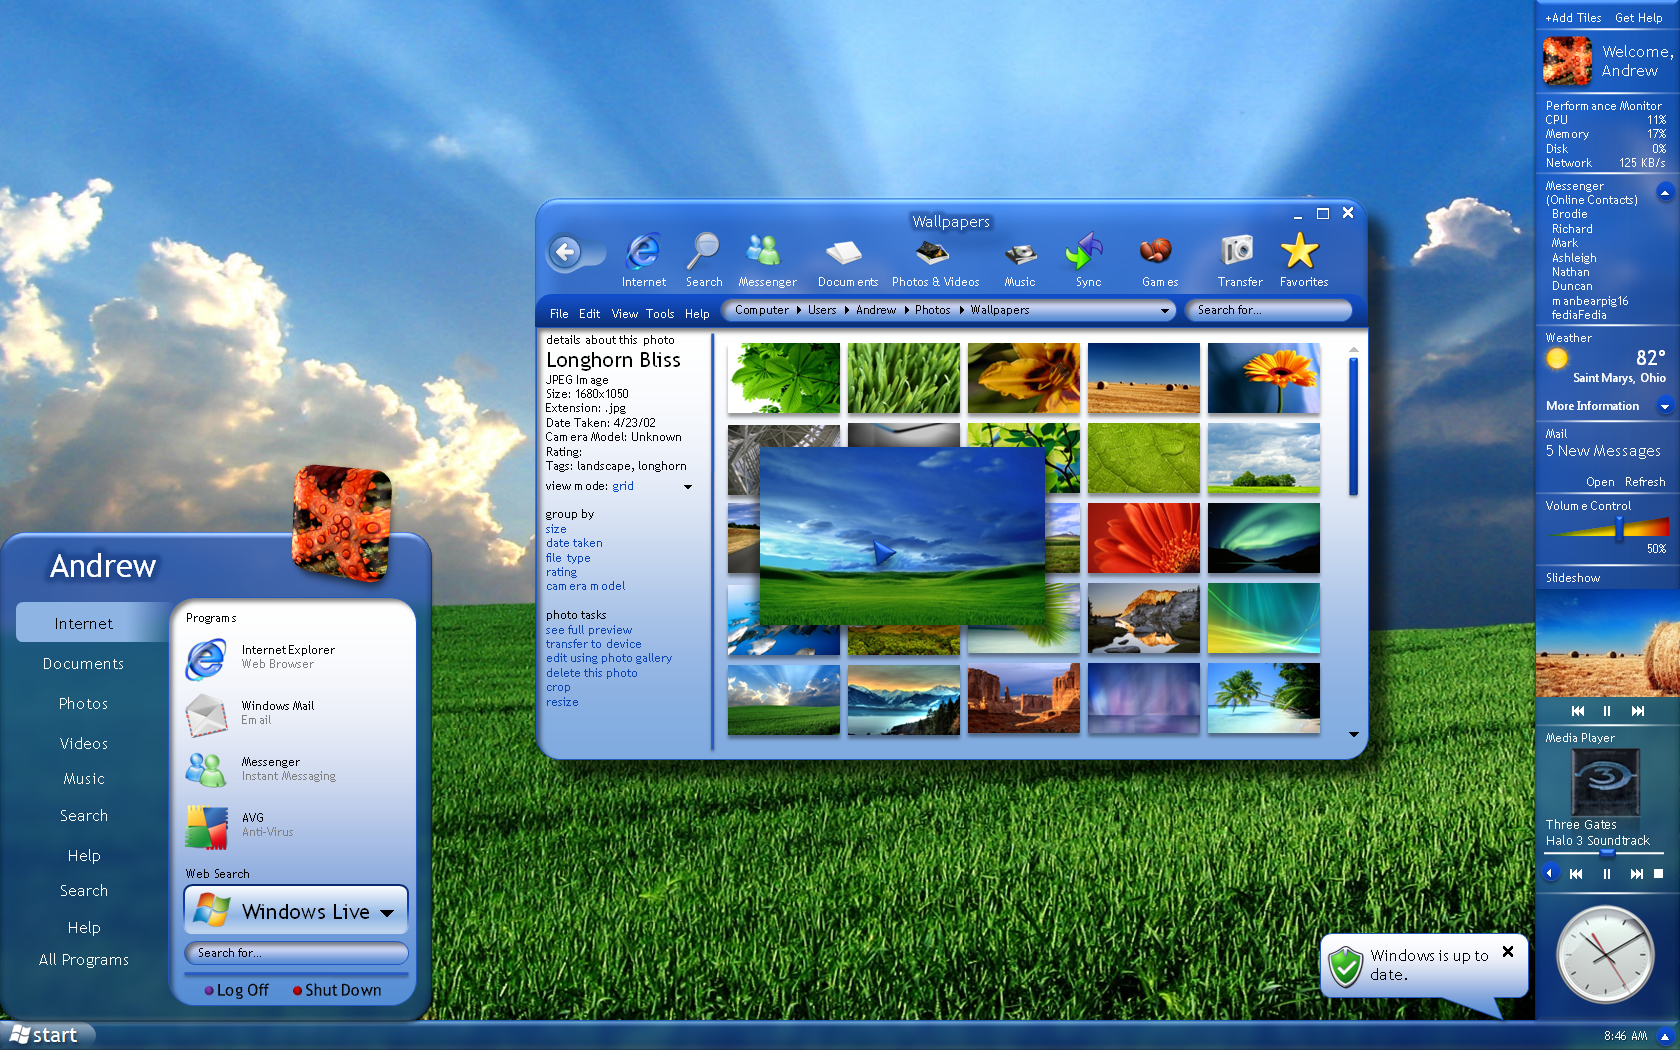 New windows 7 concept plex by aesmon11 on deviantart for New to windows